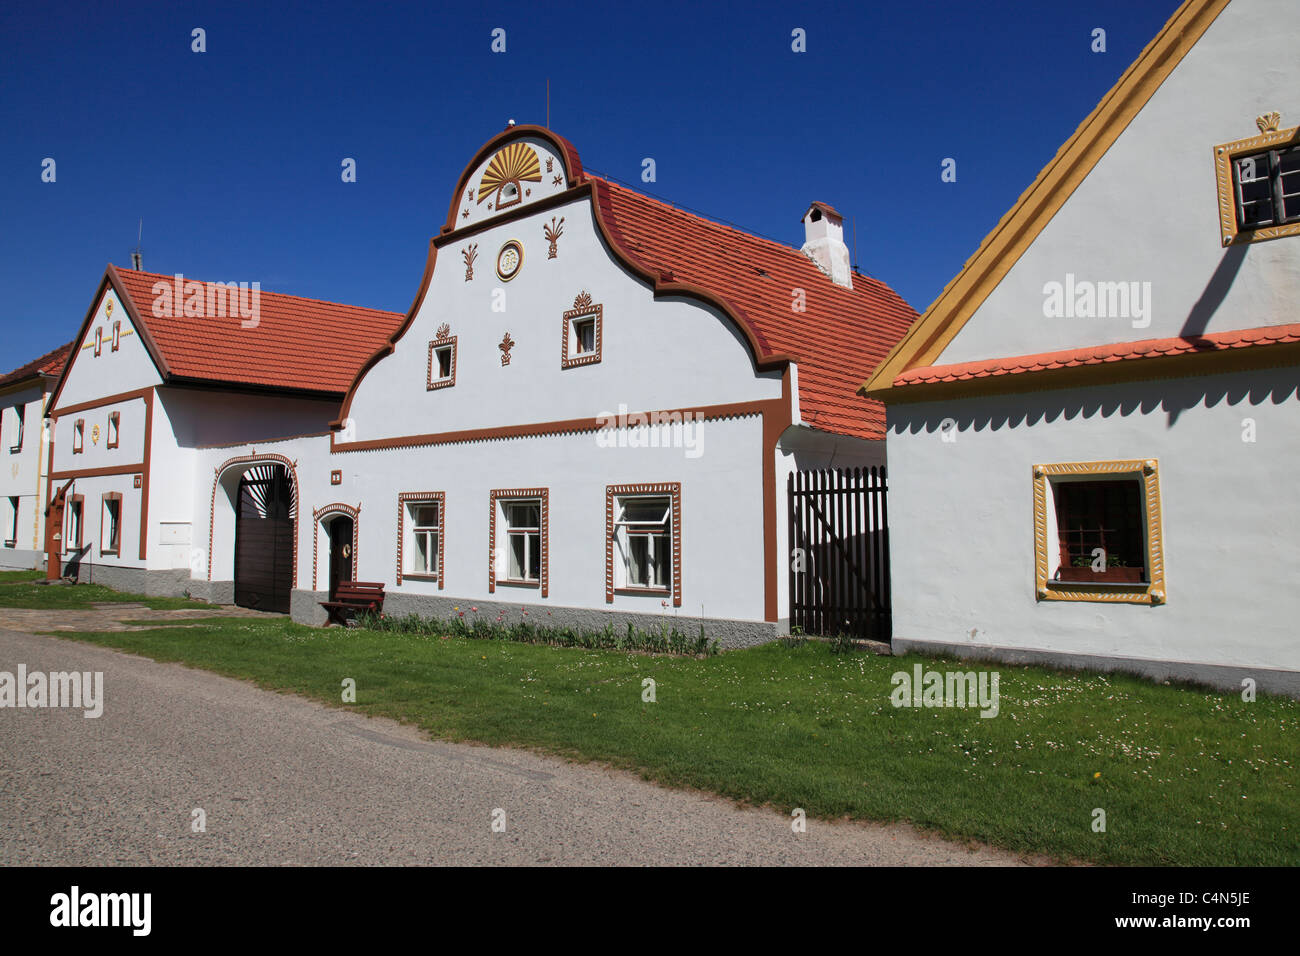 facade of houses at historical village of  Holasovice Ceske Budejovice Czech Republic, Europe. Photo by Willy Matheisl - Stock Image